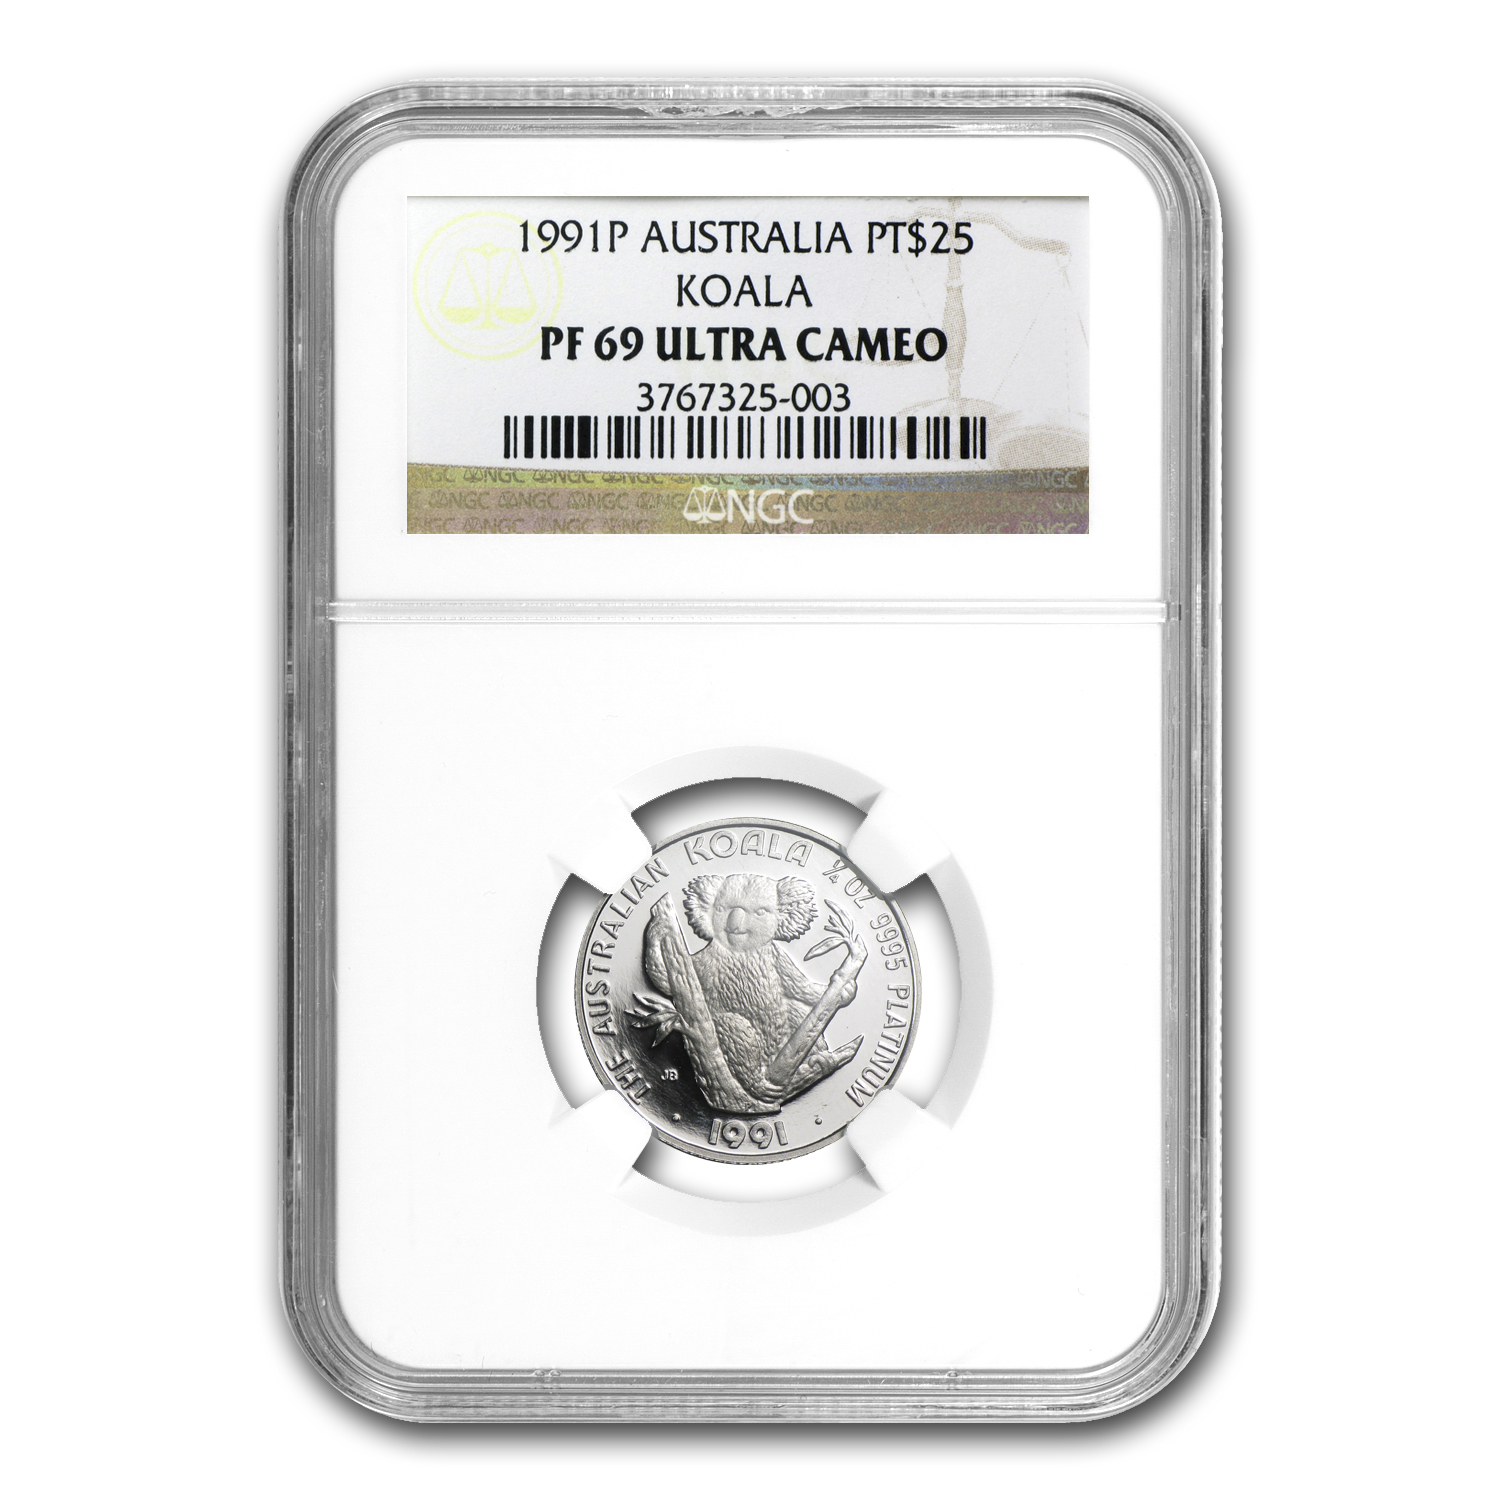 1991 Australia 1/4 oz Proof Platinum Koala PF-69 NGC